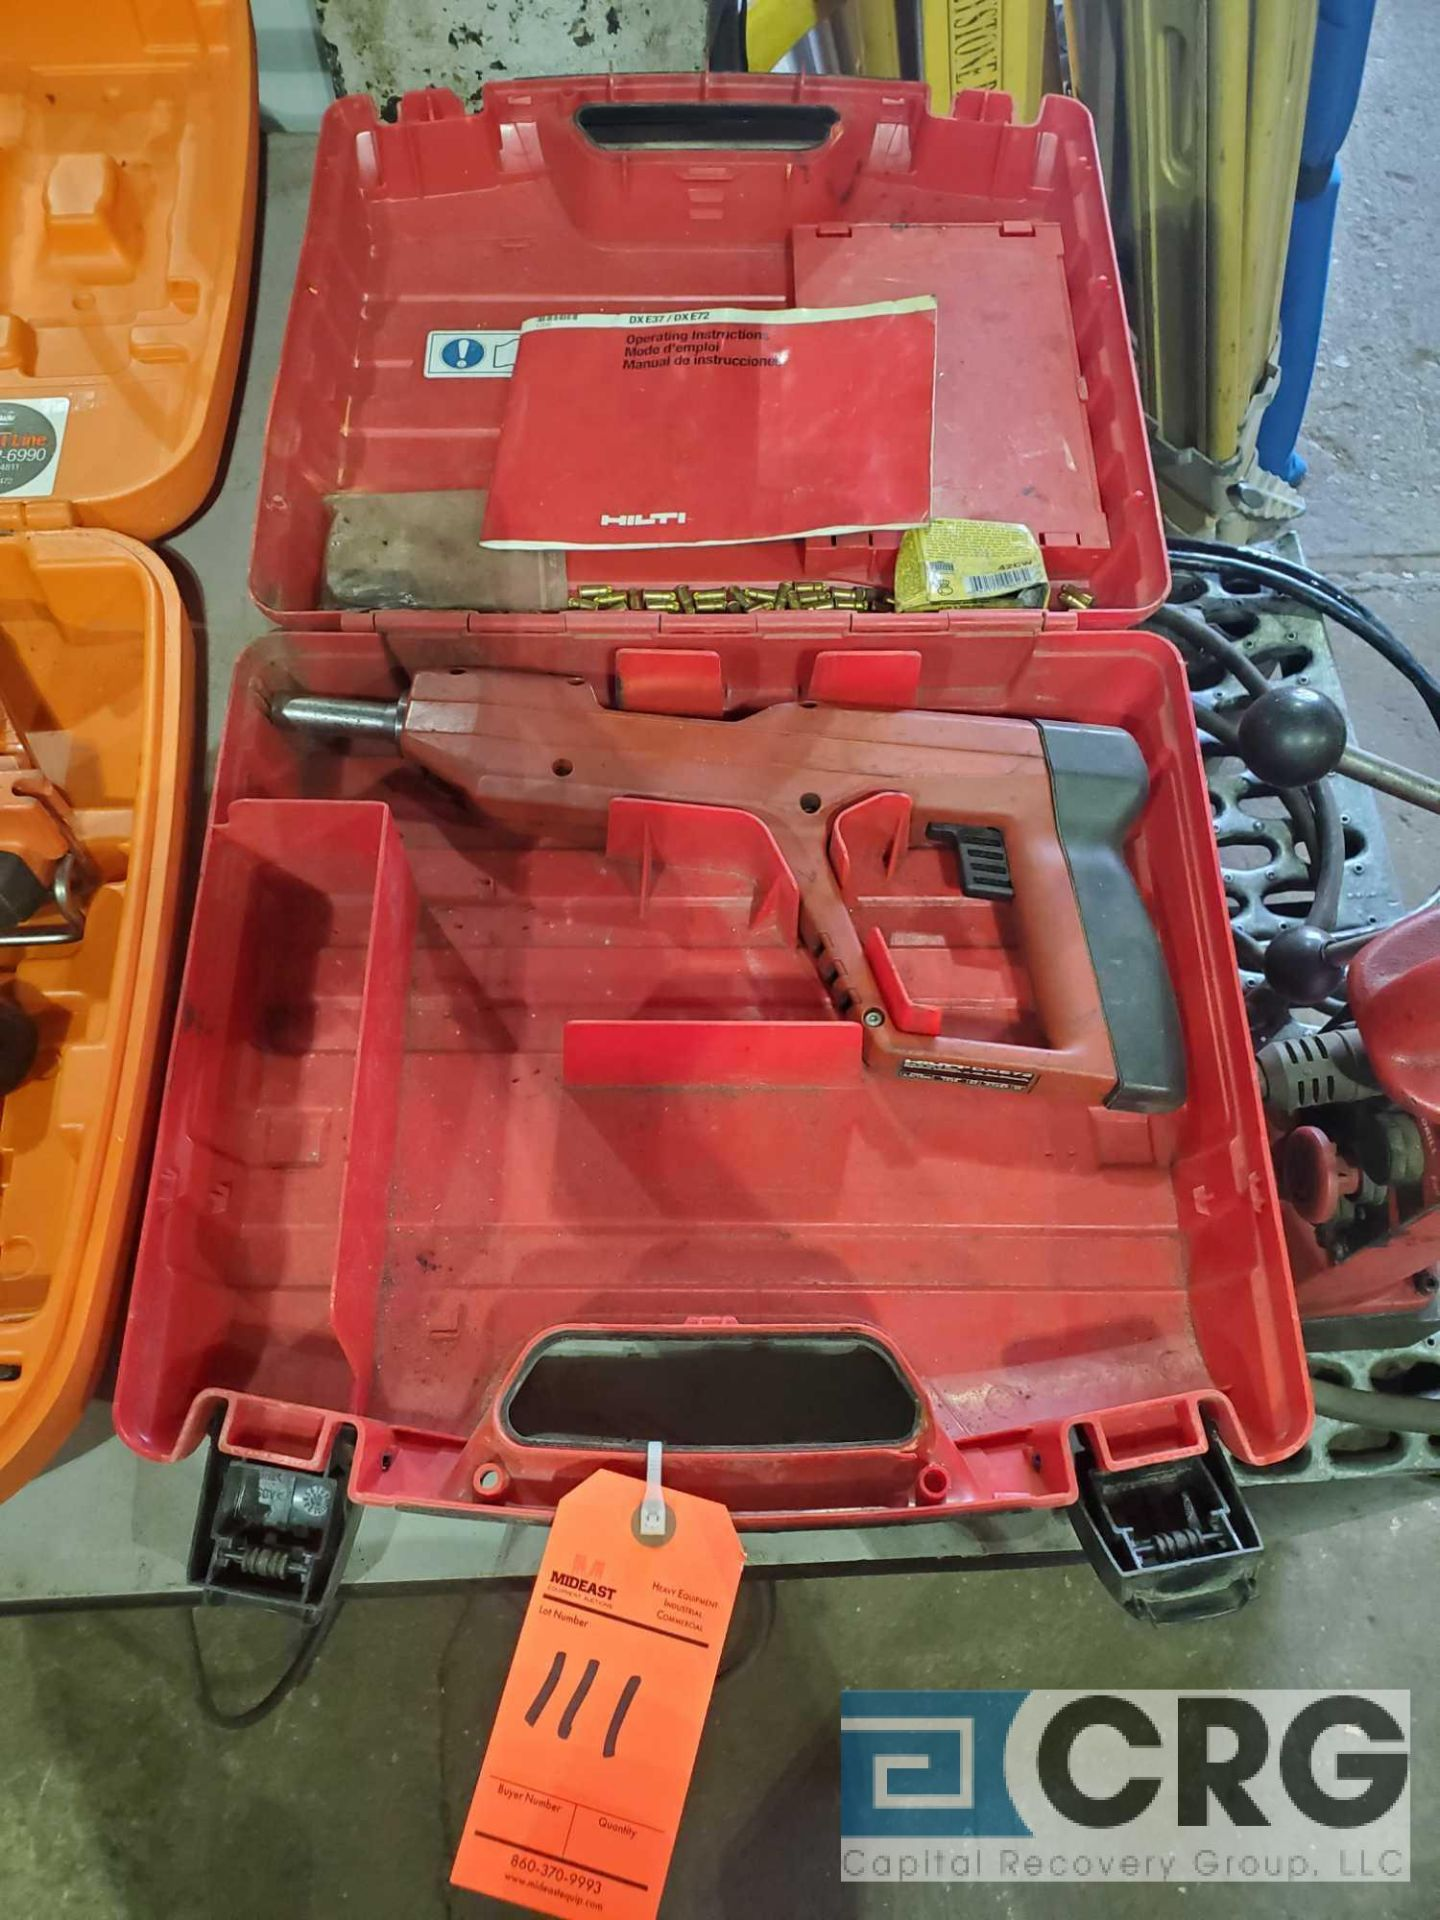 Lot 111 - Hilti DXE72 powder actuated nailer with case